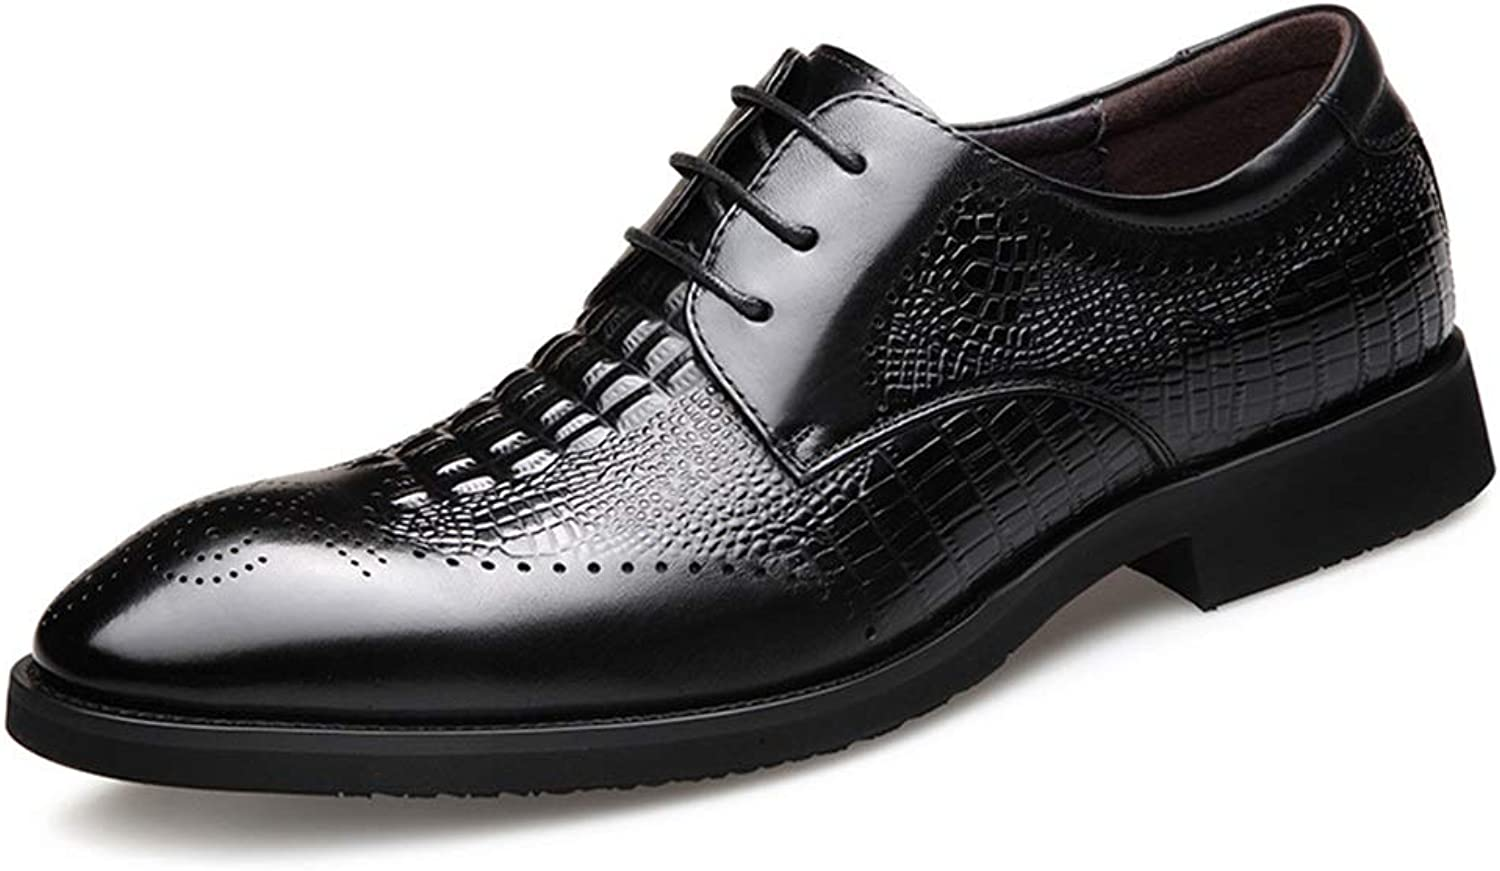 Men's shoes, New Man Business Dress shoes British Single shoes Mens Leather Pointed Casual shoes (color   Black, Size   42)